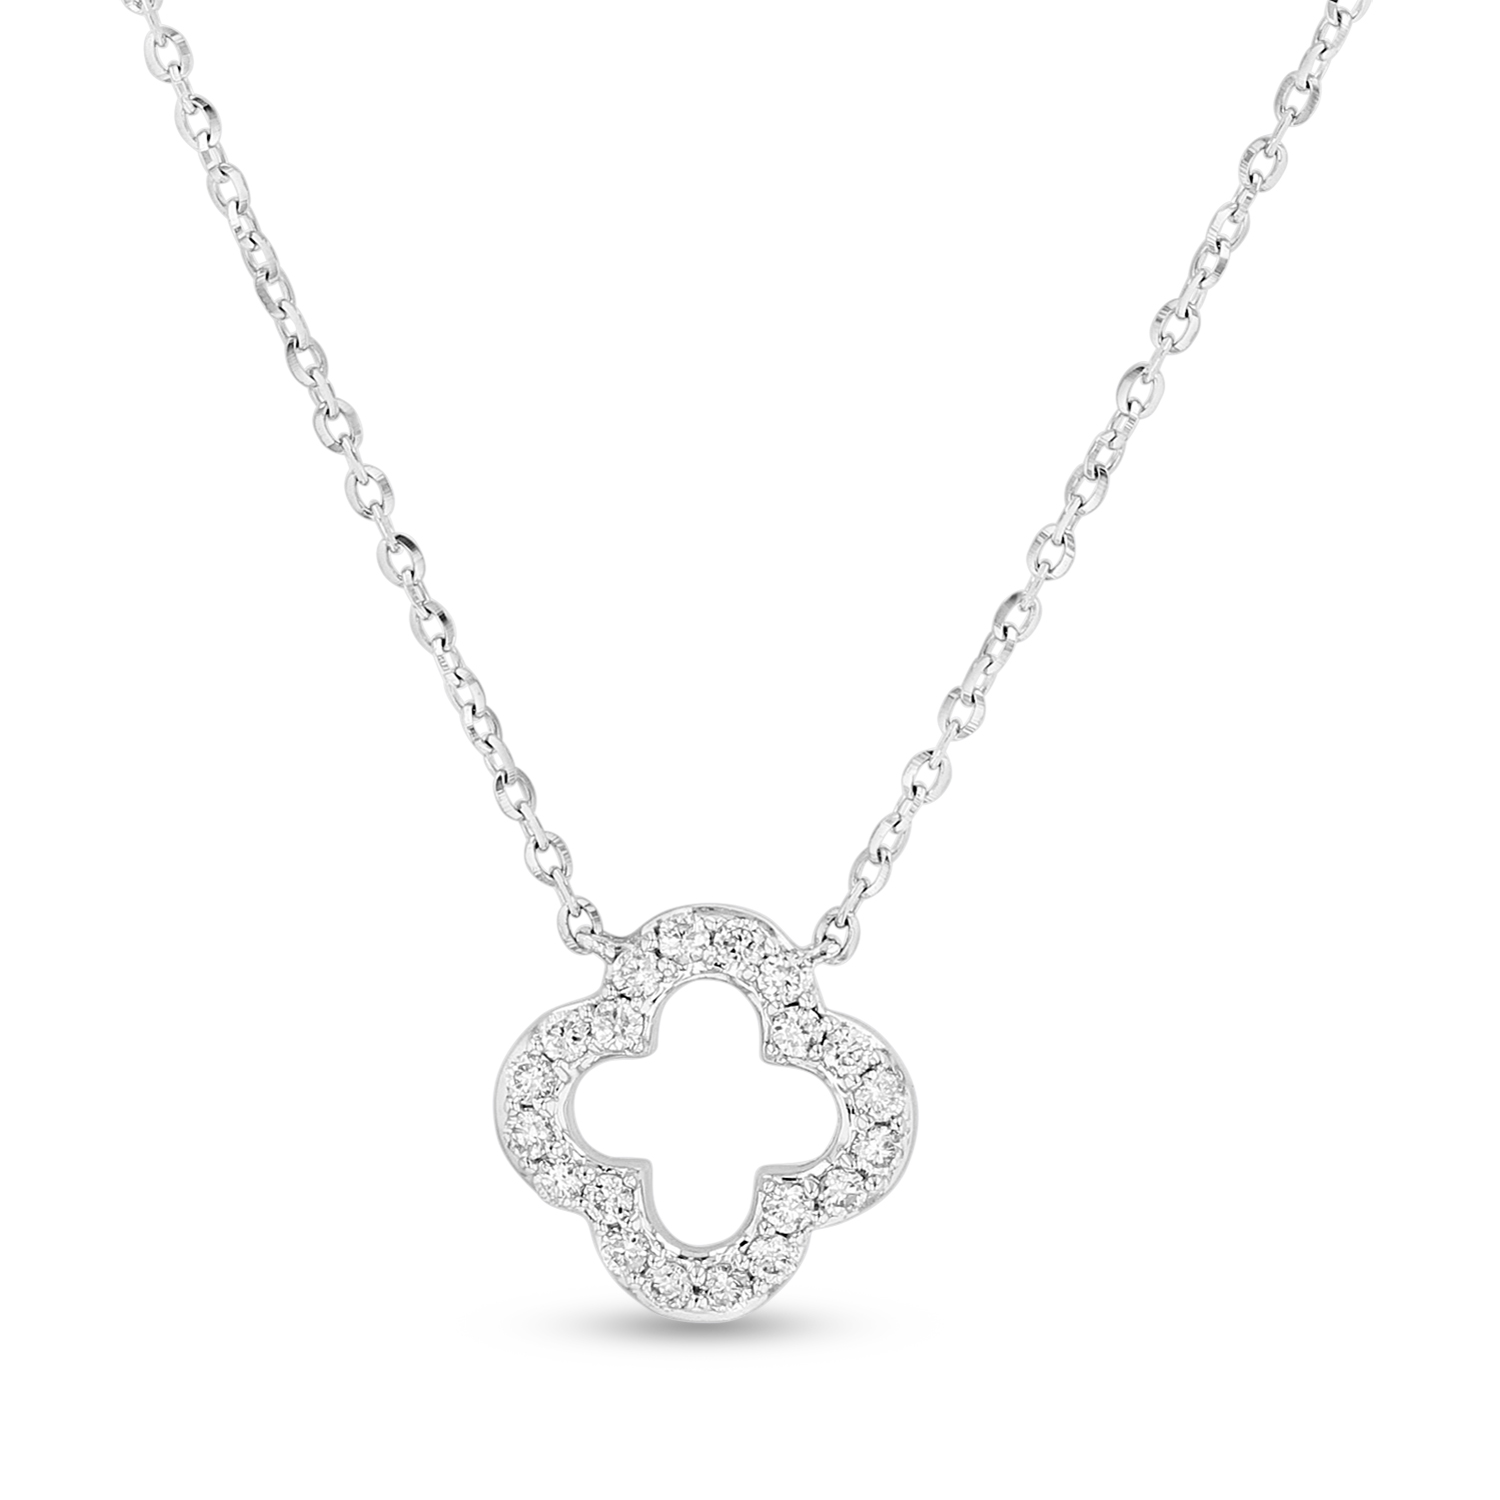 View 0.12ctw Diamond Clover Shaped Pendant in 14k White Gold